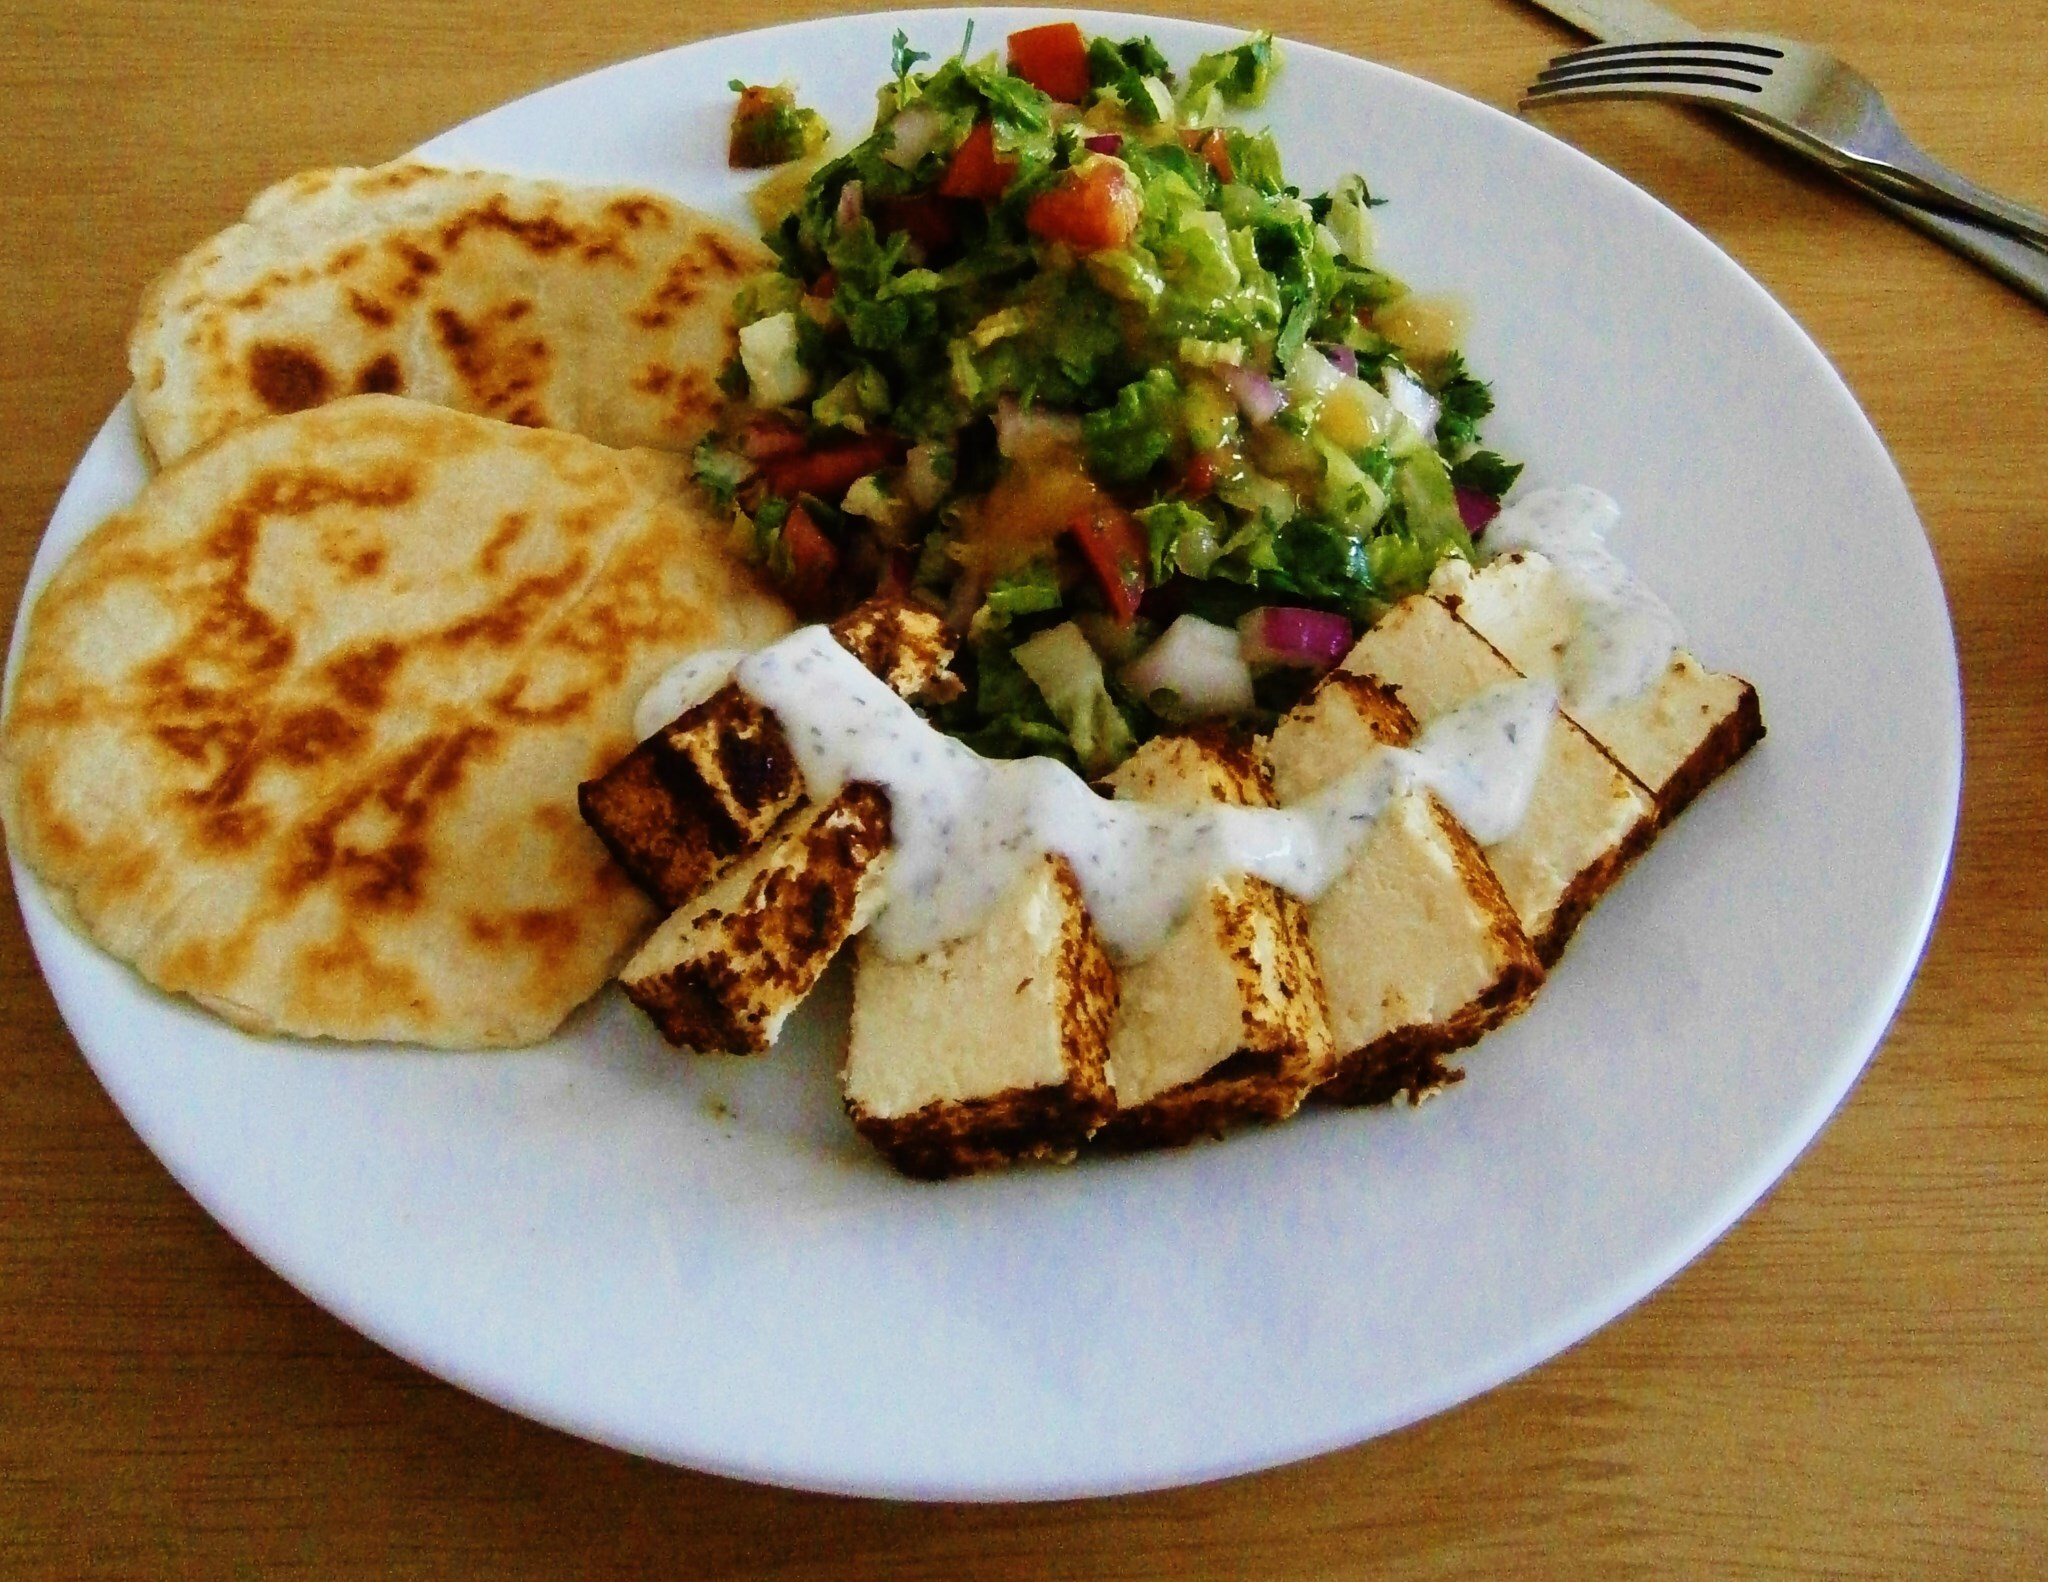 Marinated paneer with minted yoghurt served with an Indian style chopped salad and almond stuff roti